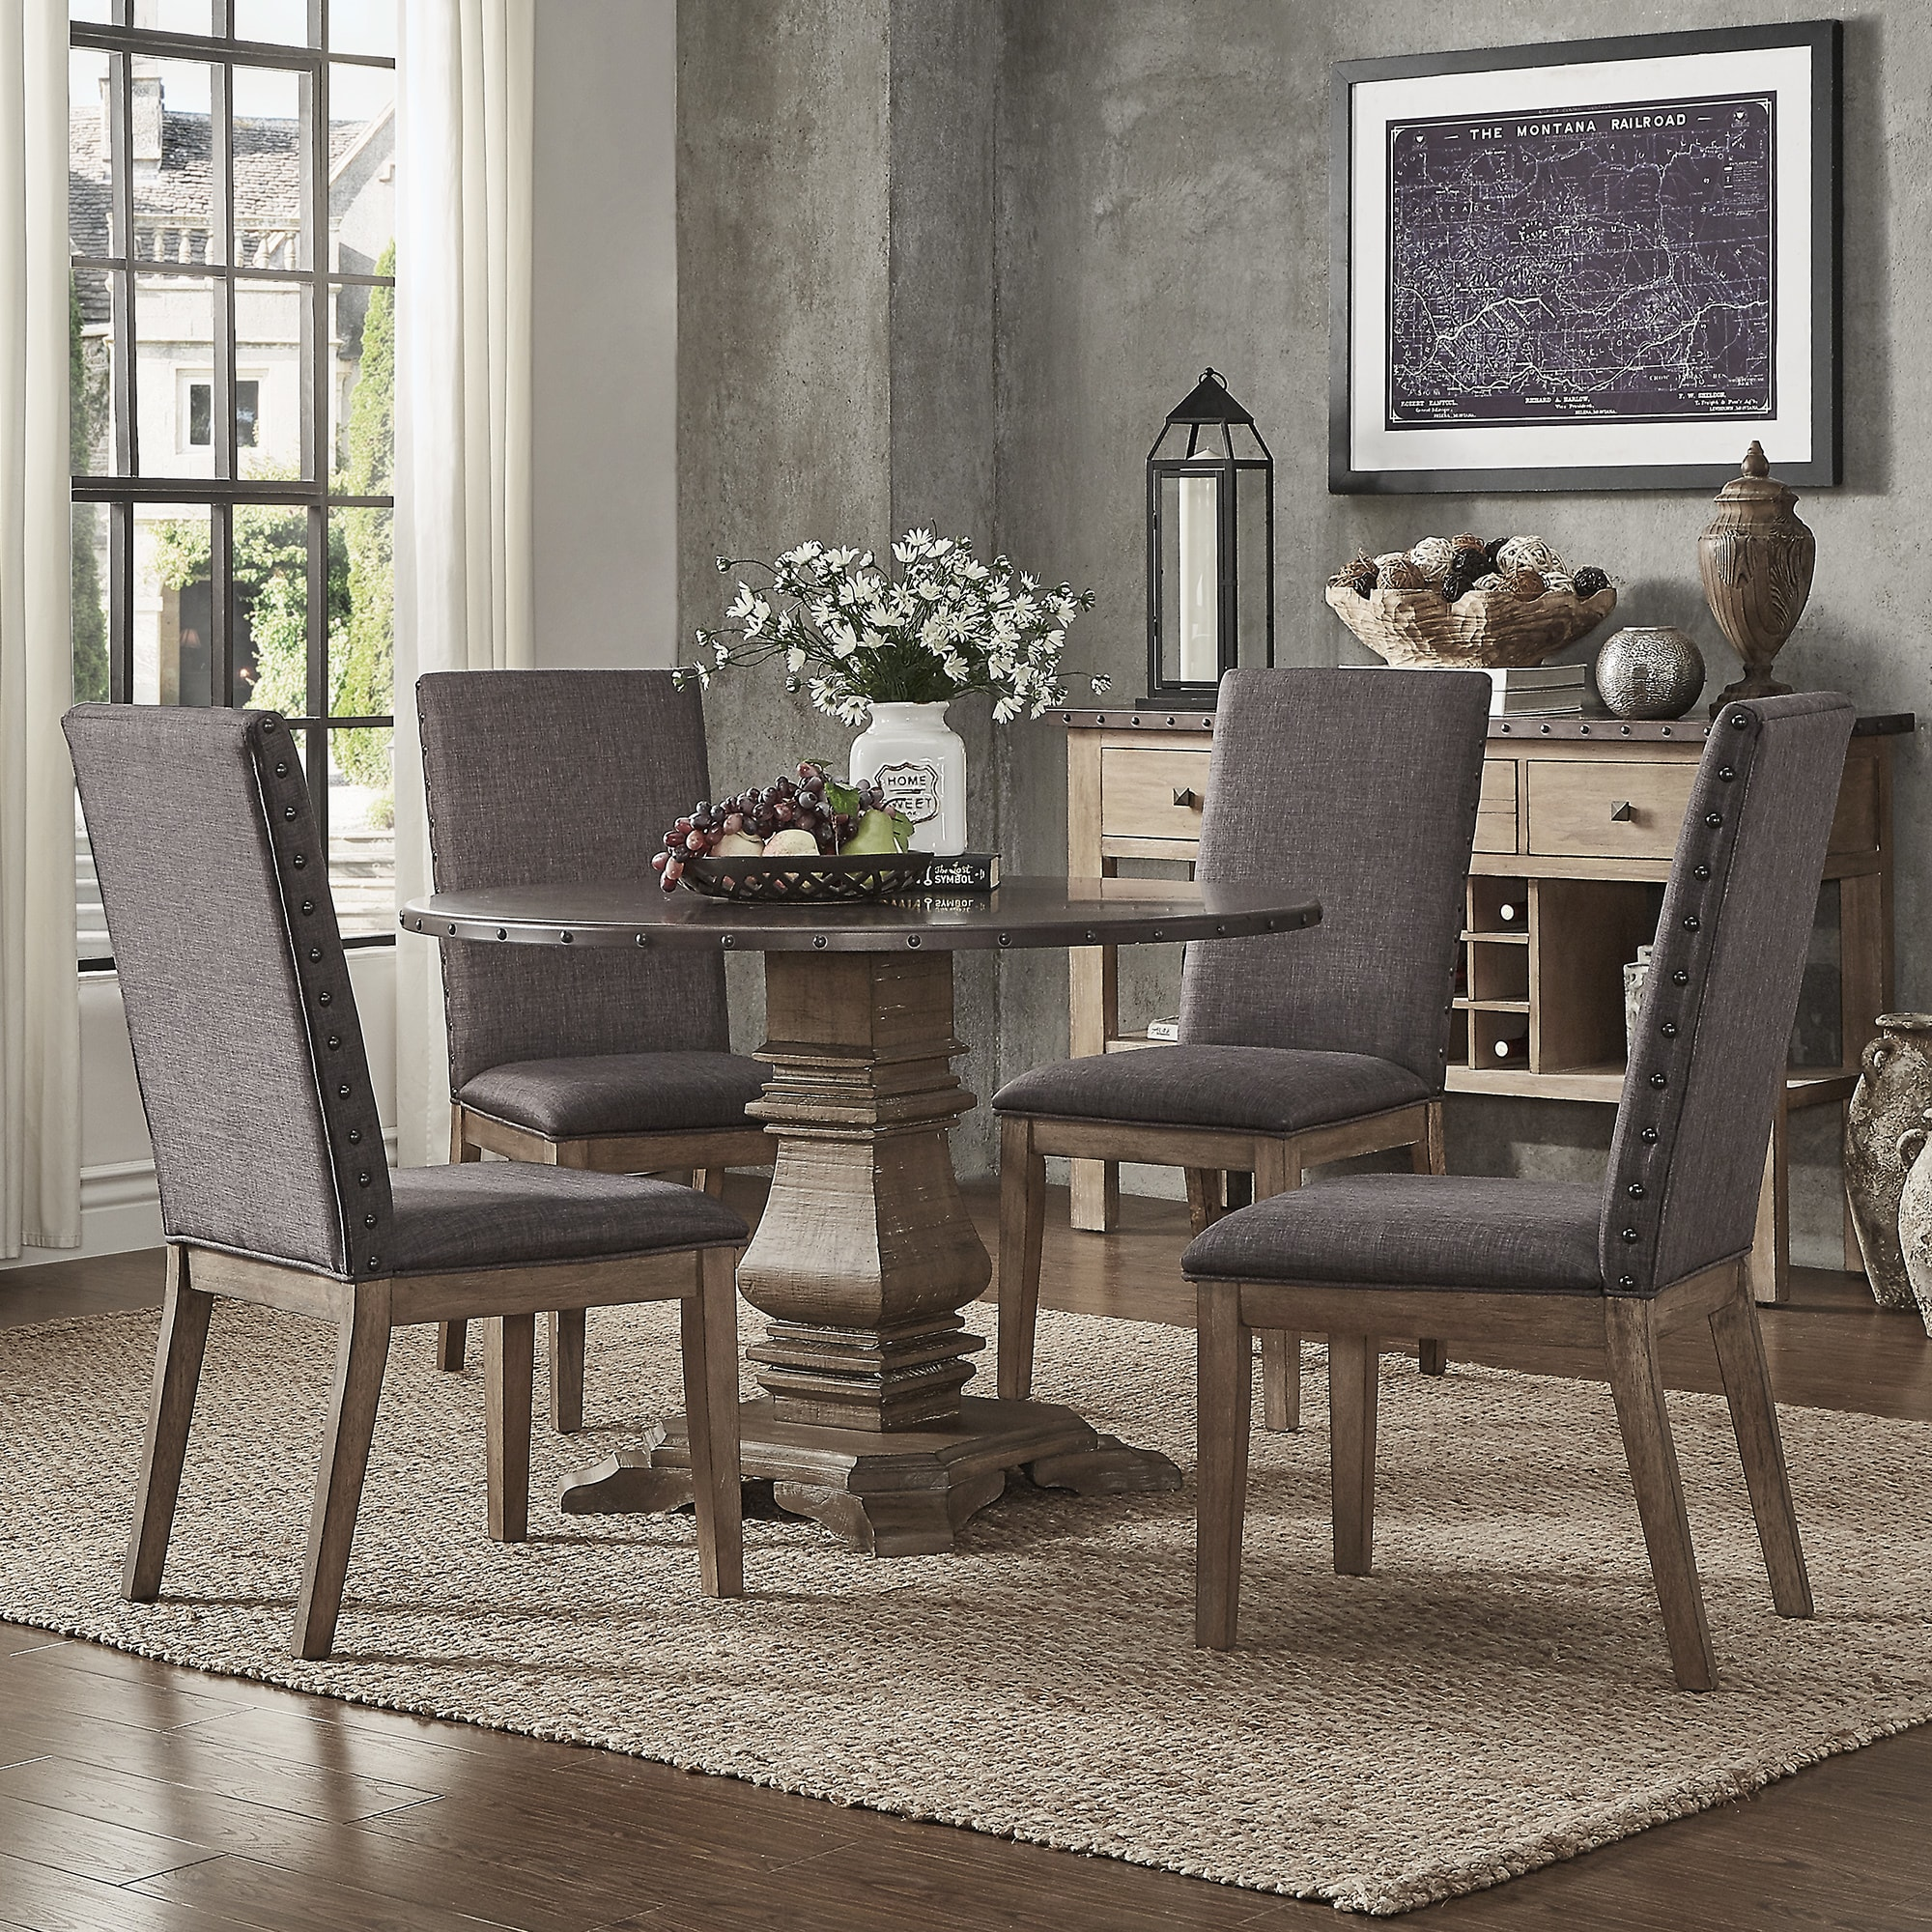 Prime Janelle Round Rustic Zinc Dining Set Parson Chairs By Inspire Q Artisan Cjindustries Chair Design For Home Cjindustriesco